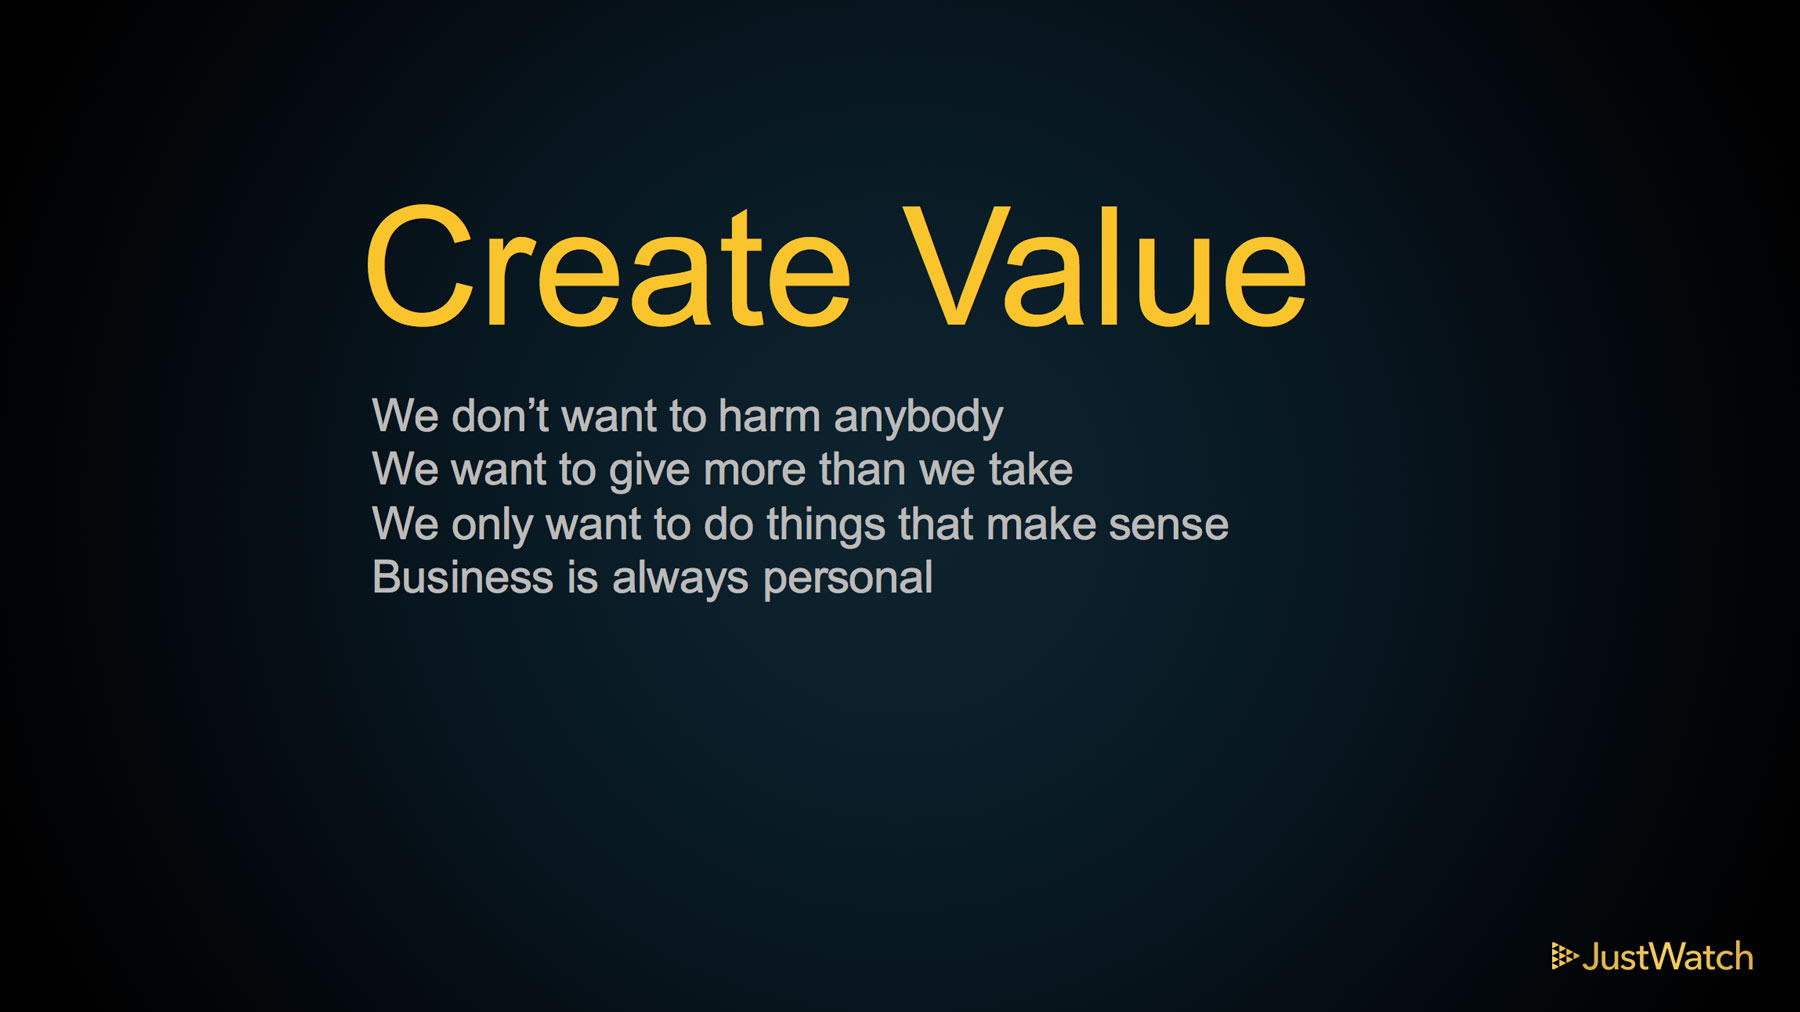 JustWatch core value: Create Value